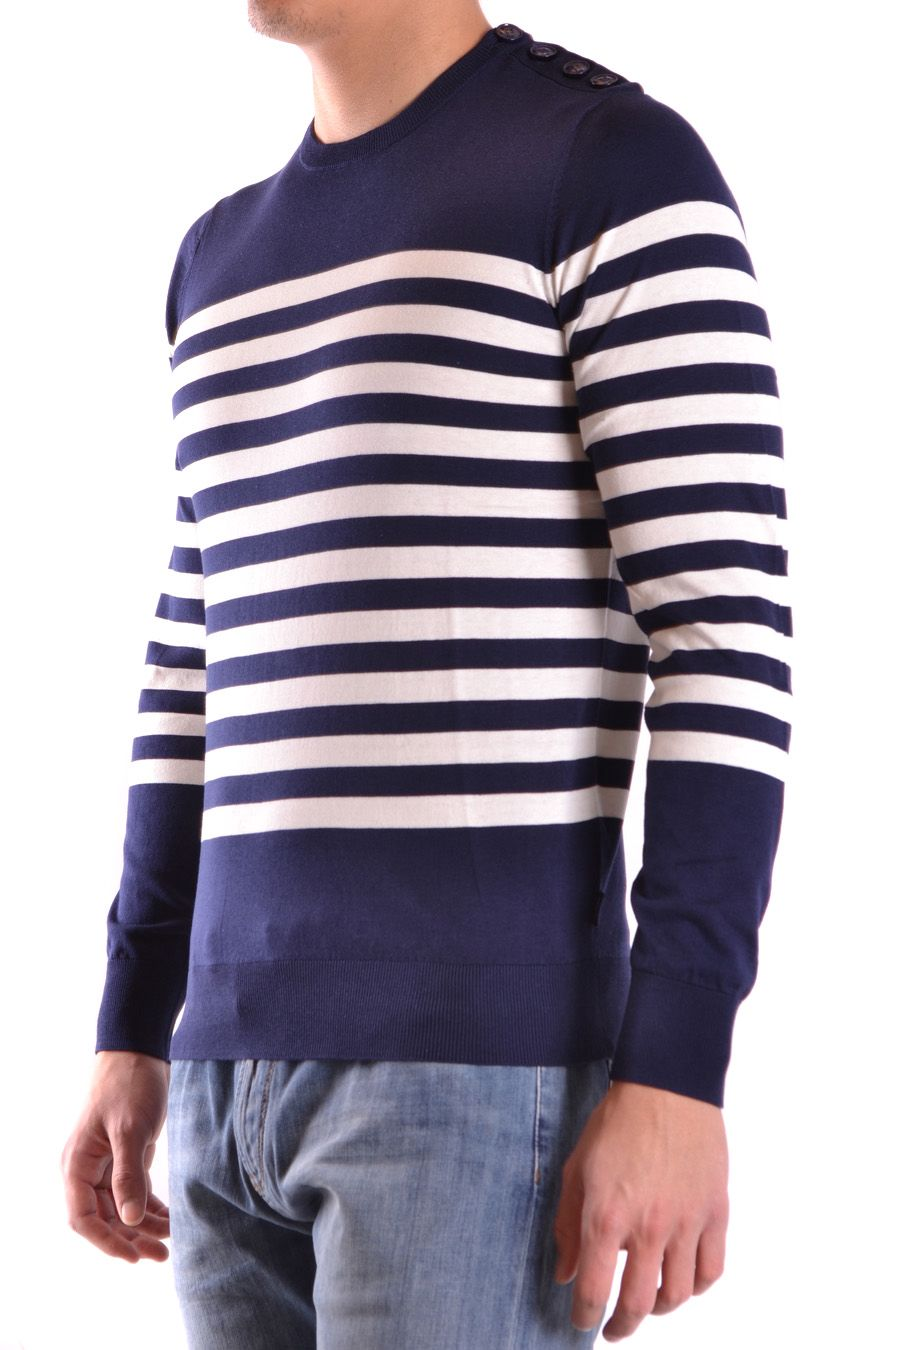 Armani Jeans Men S Silk Sweater - Afound  2441070e378ab